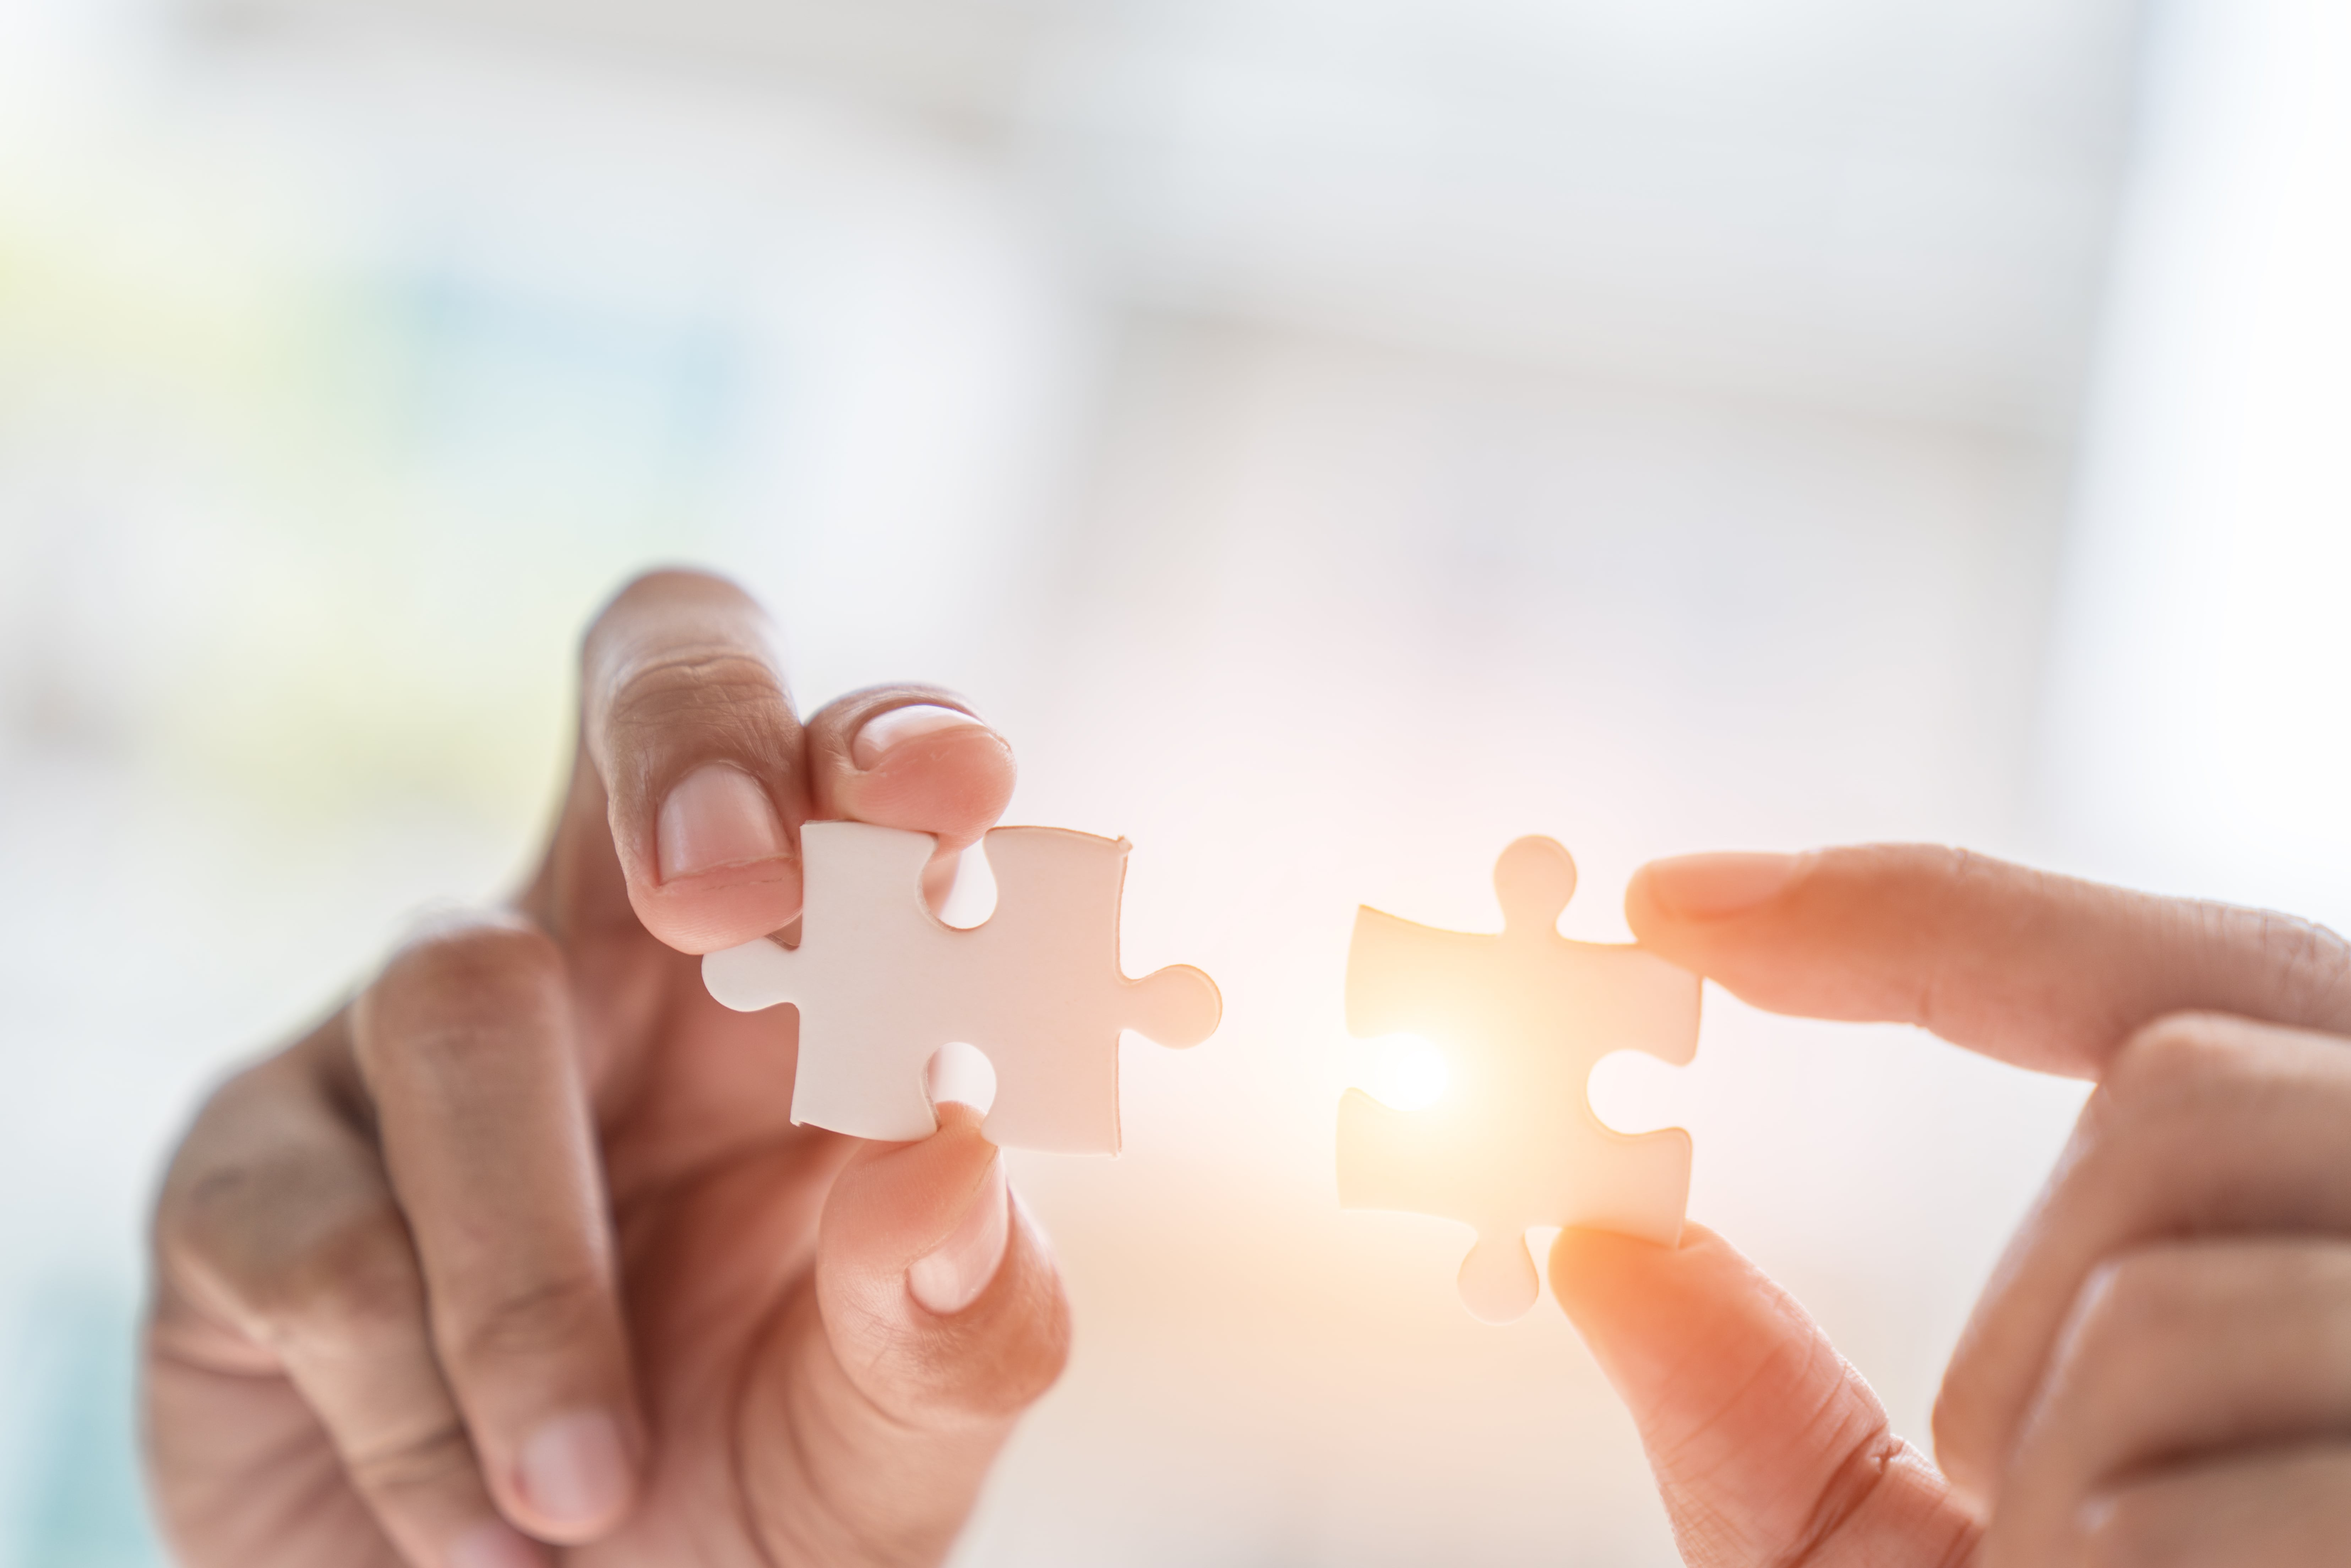 Business solutions, success and strategy concept. Businessman hand connecting jigsaw puzzle.